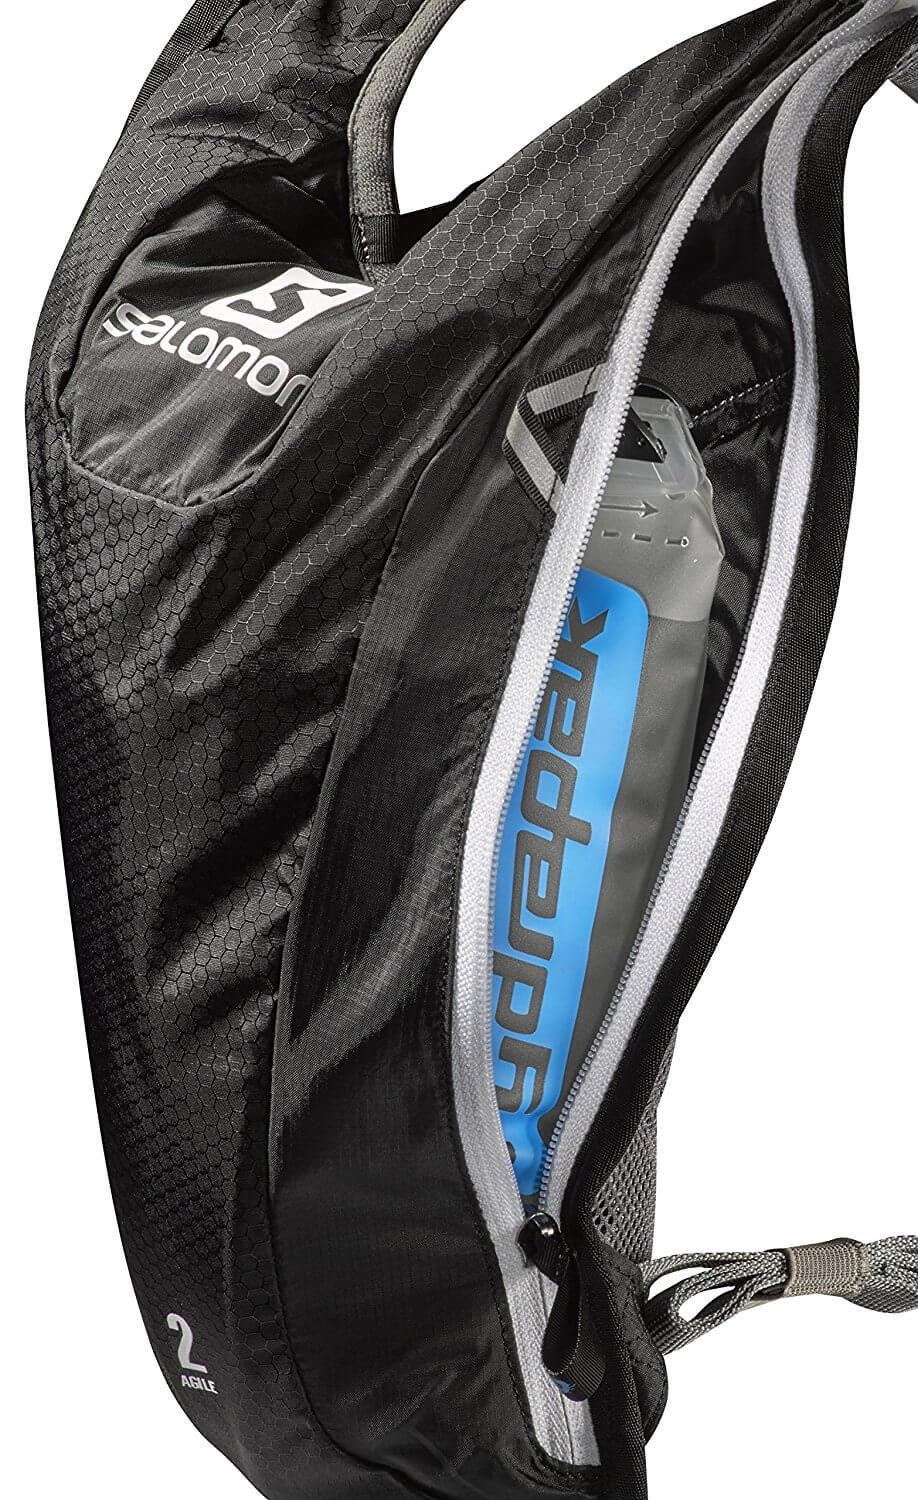 The Salomon Agile 2 Hydration Pack features EVA padded straps